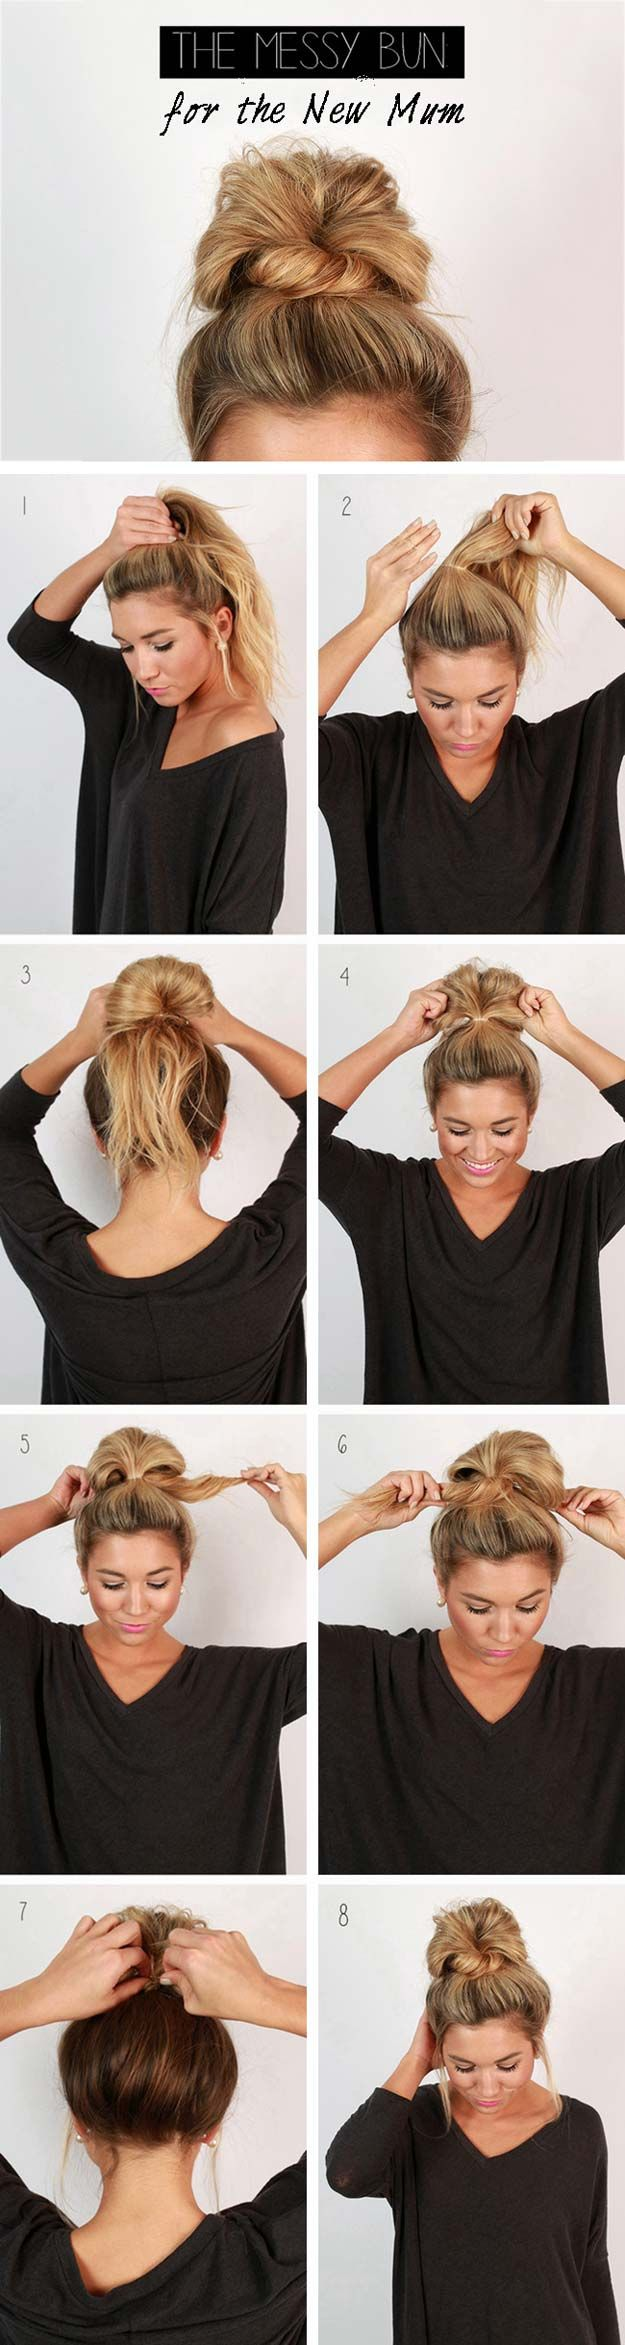 diy cool easy hairstyles that real people can actually do at home